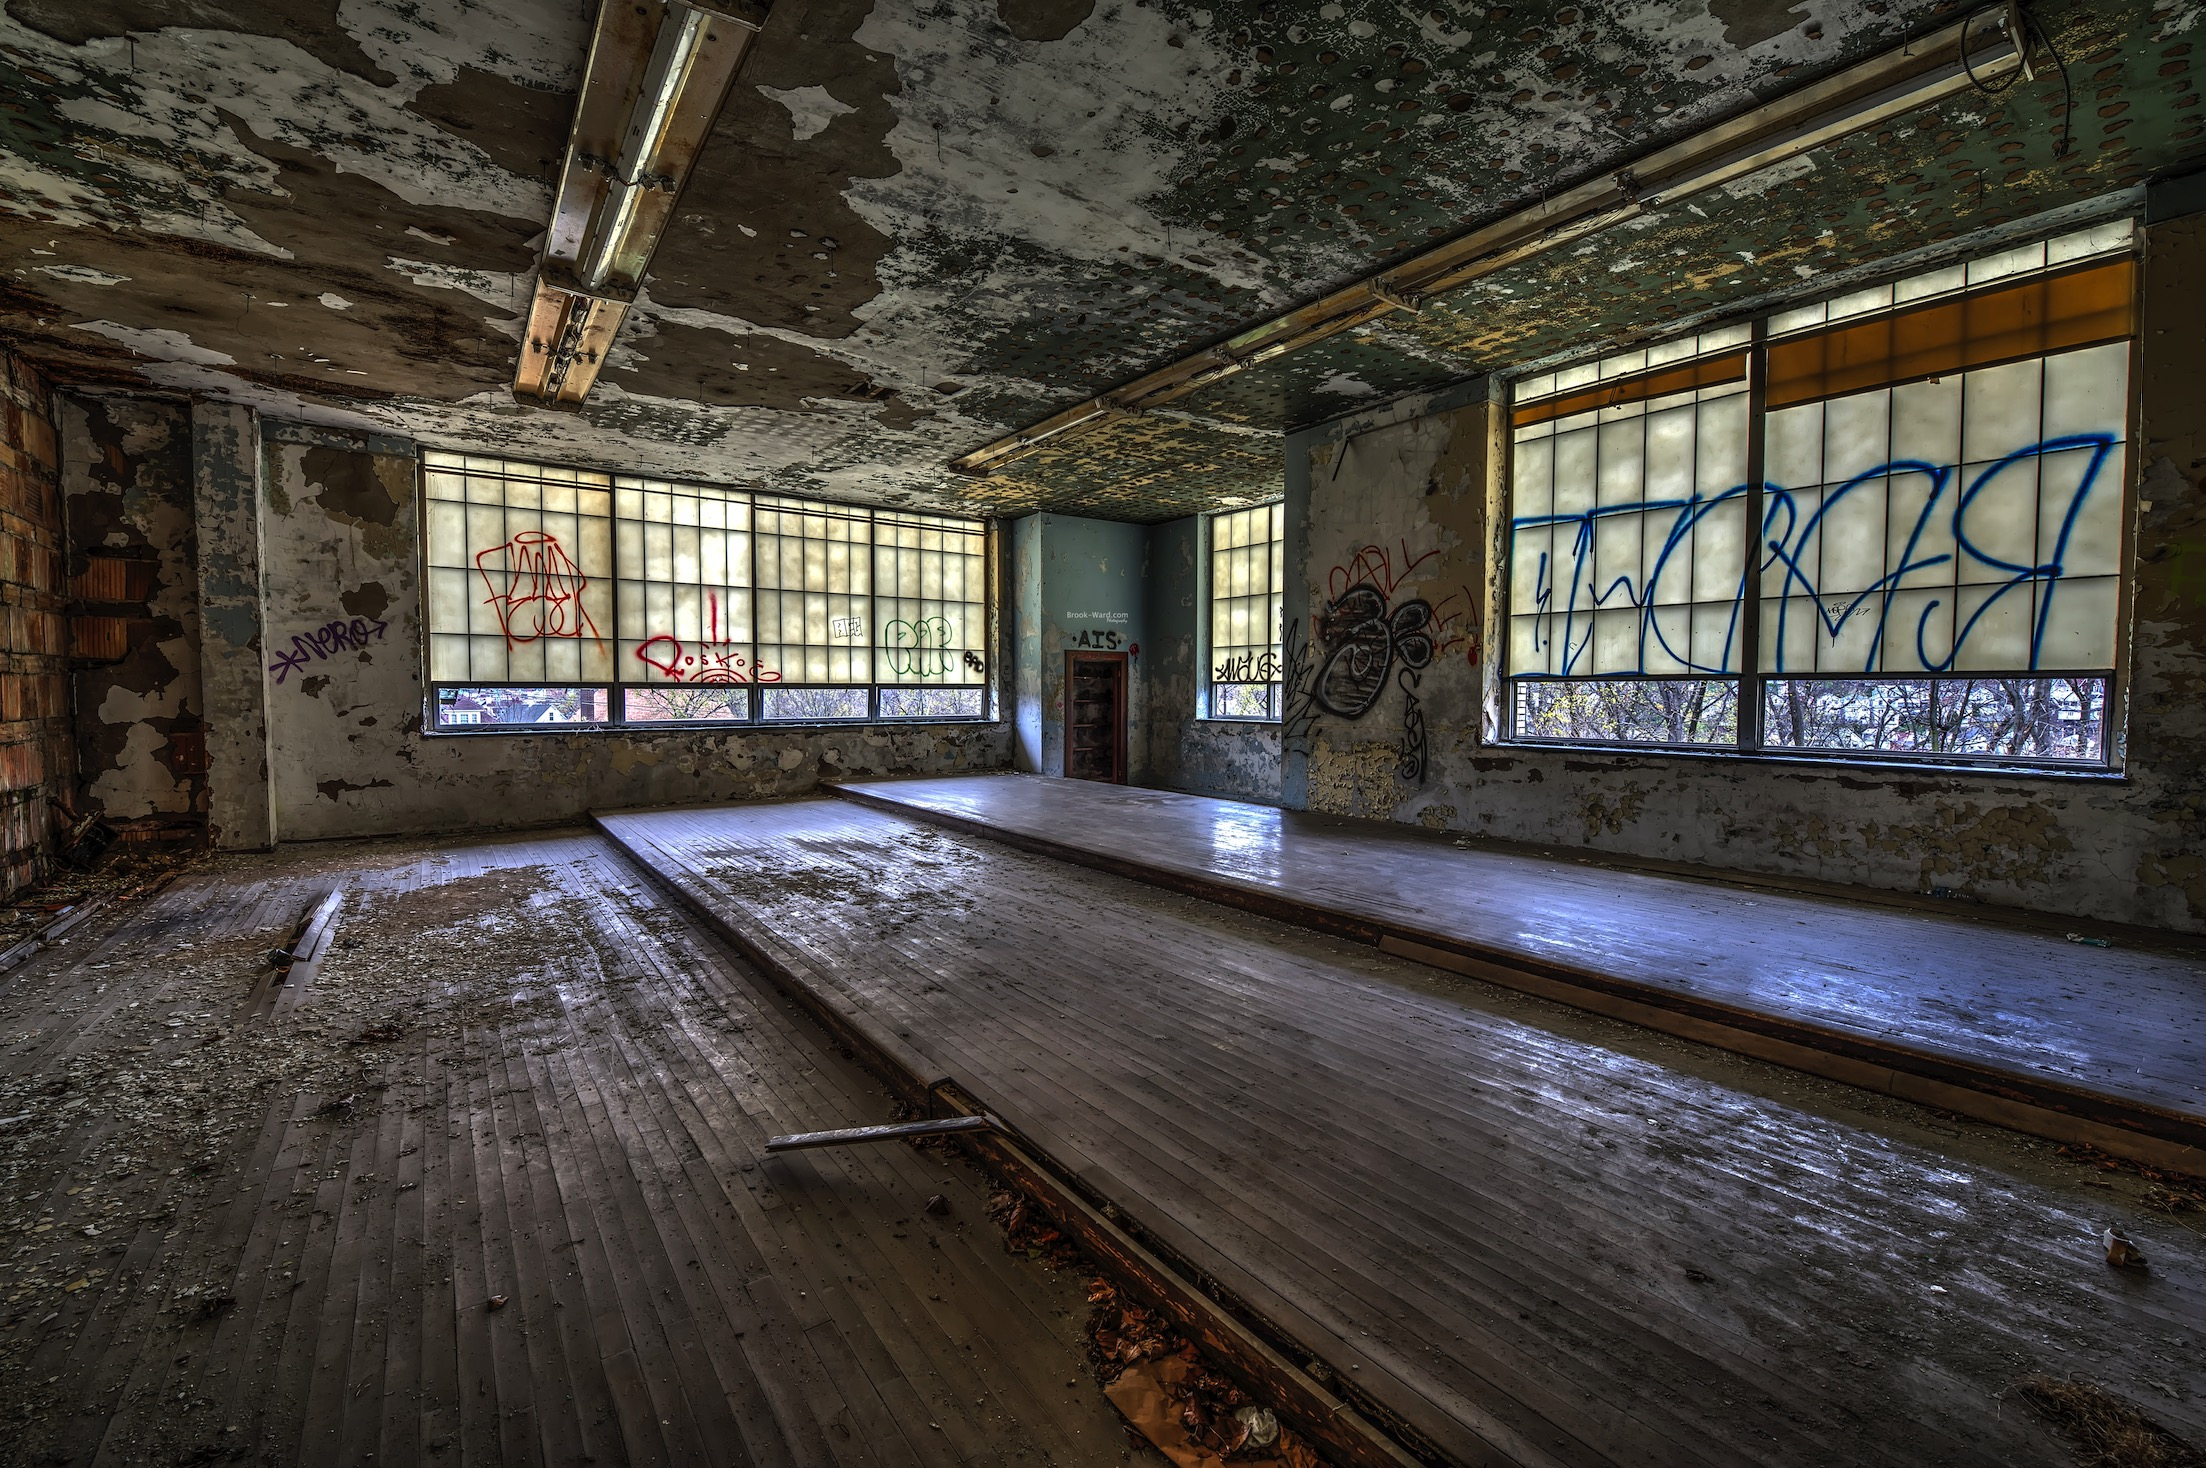 Band Room in the abandoned school